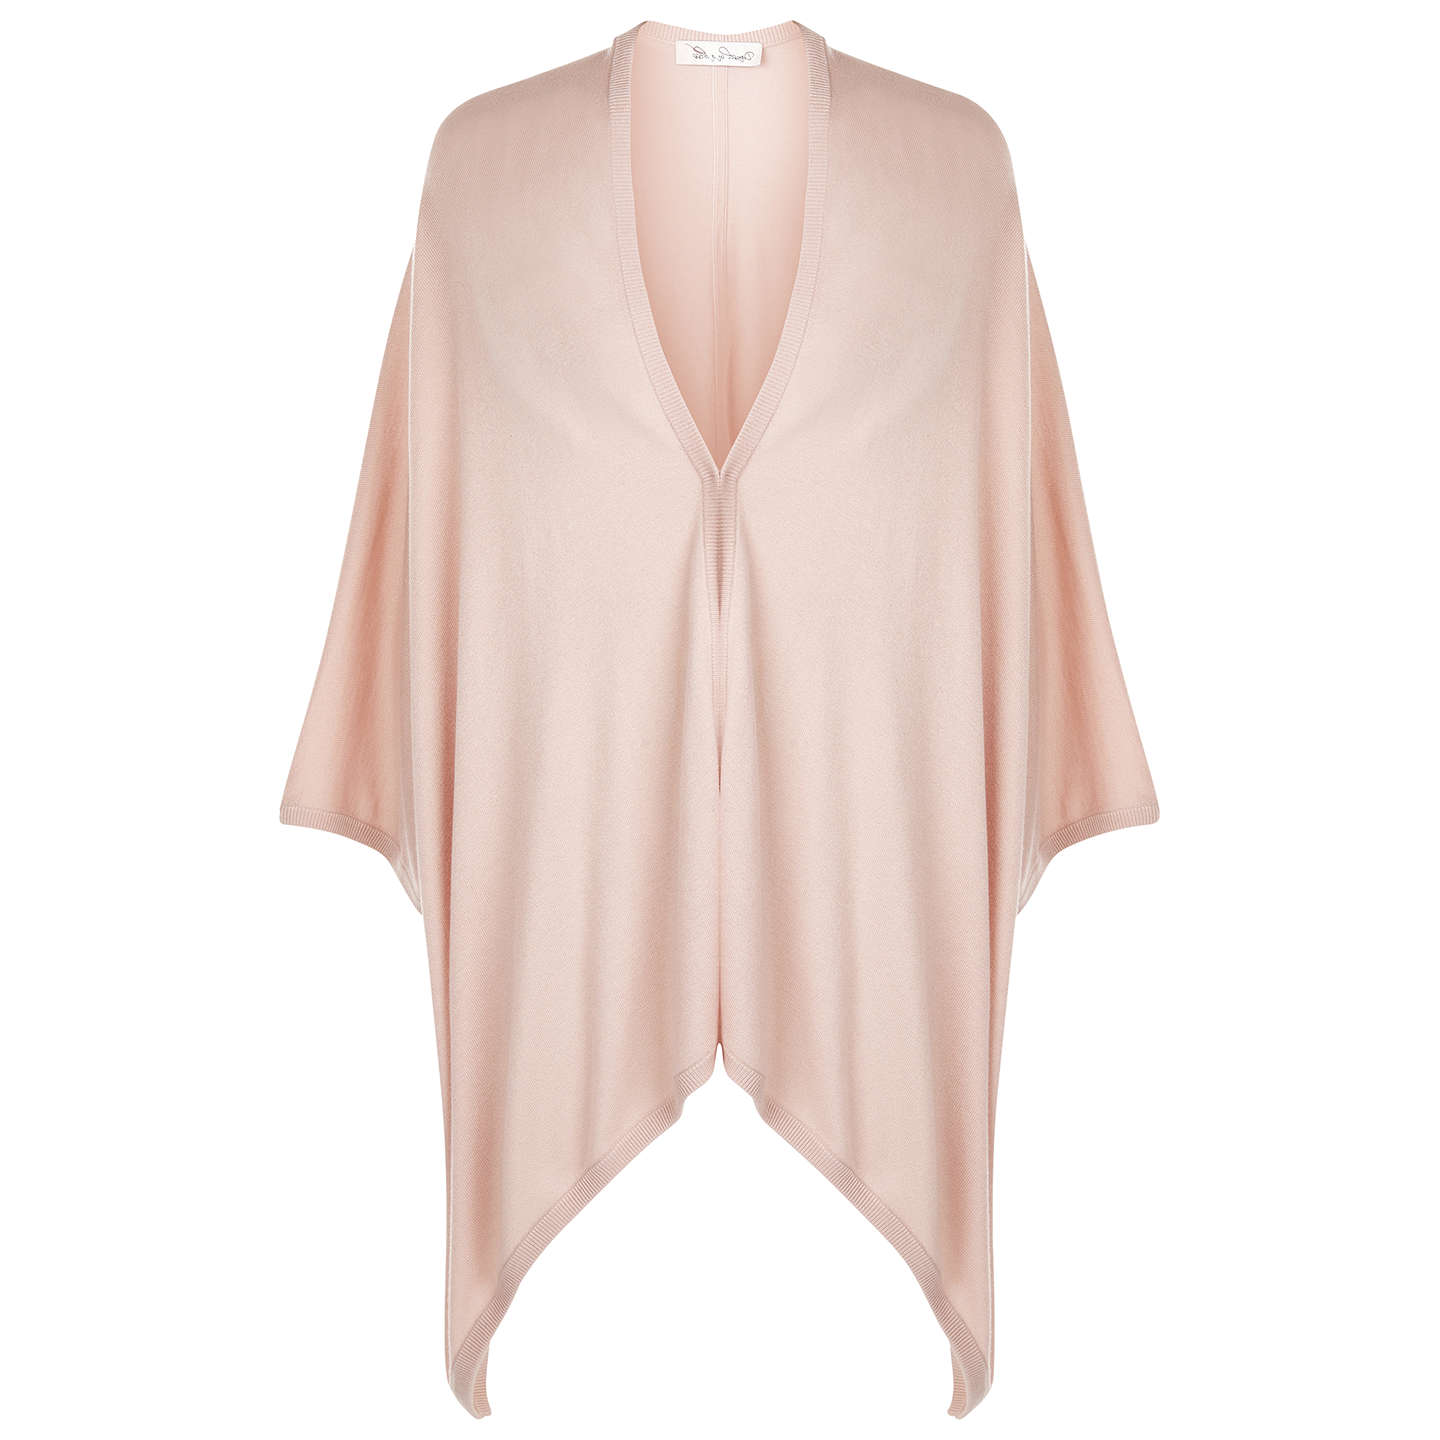 BuyDamsel in a dress Scoop Cover Up, Blush, S-M Online at johnlewis.com